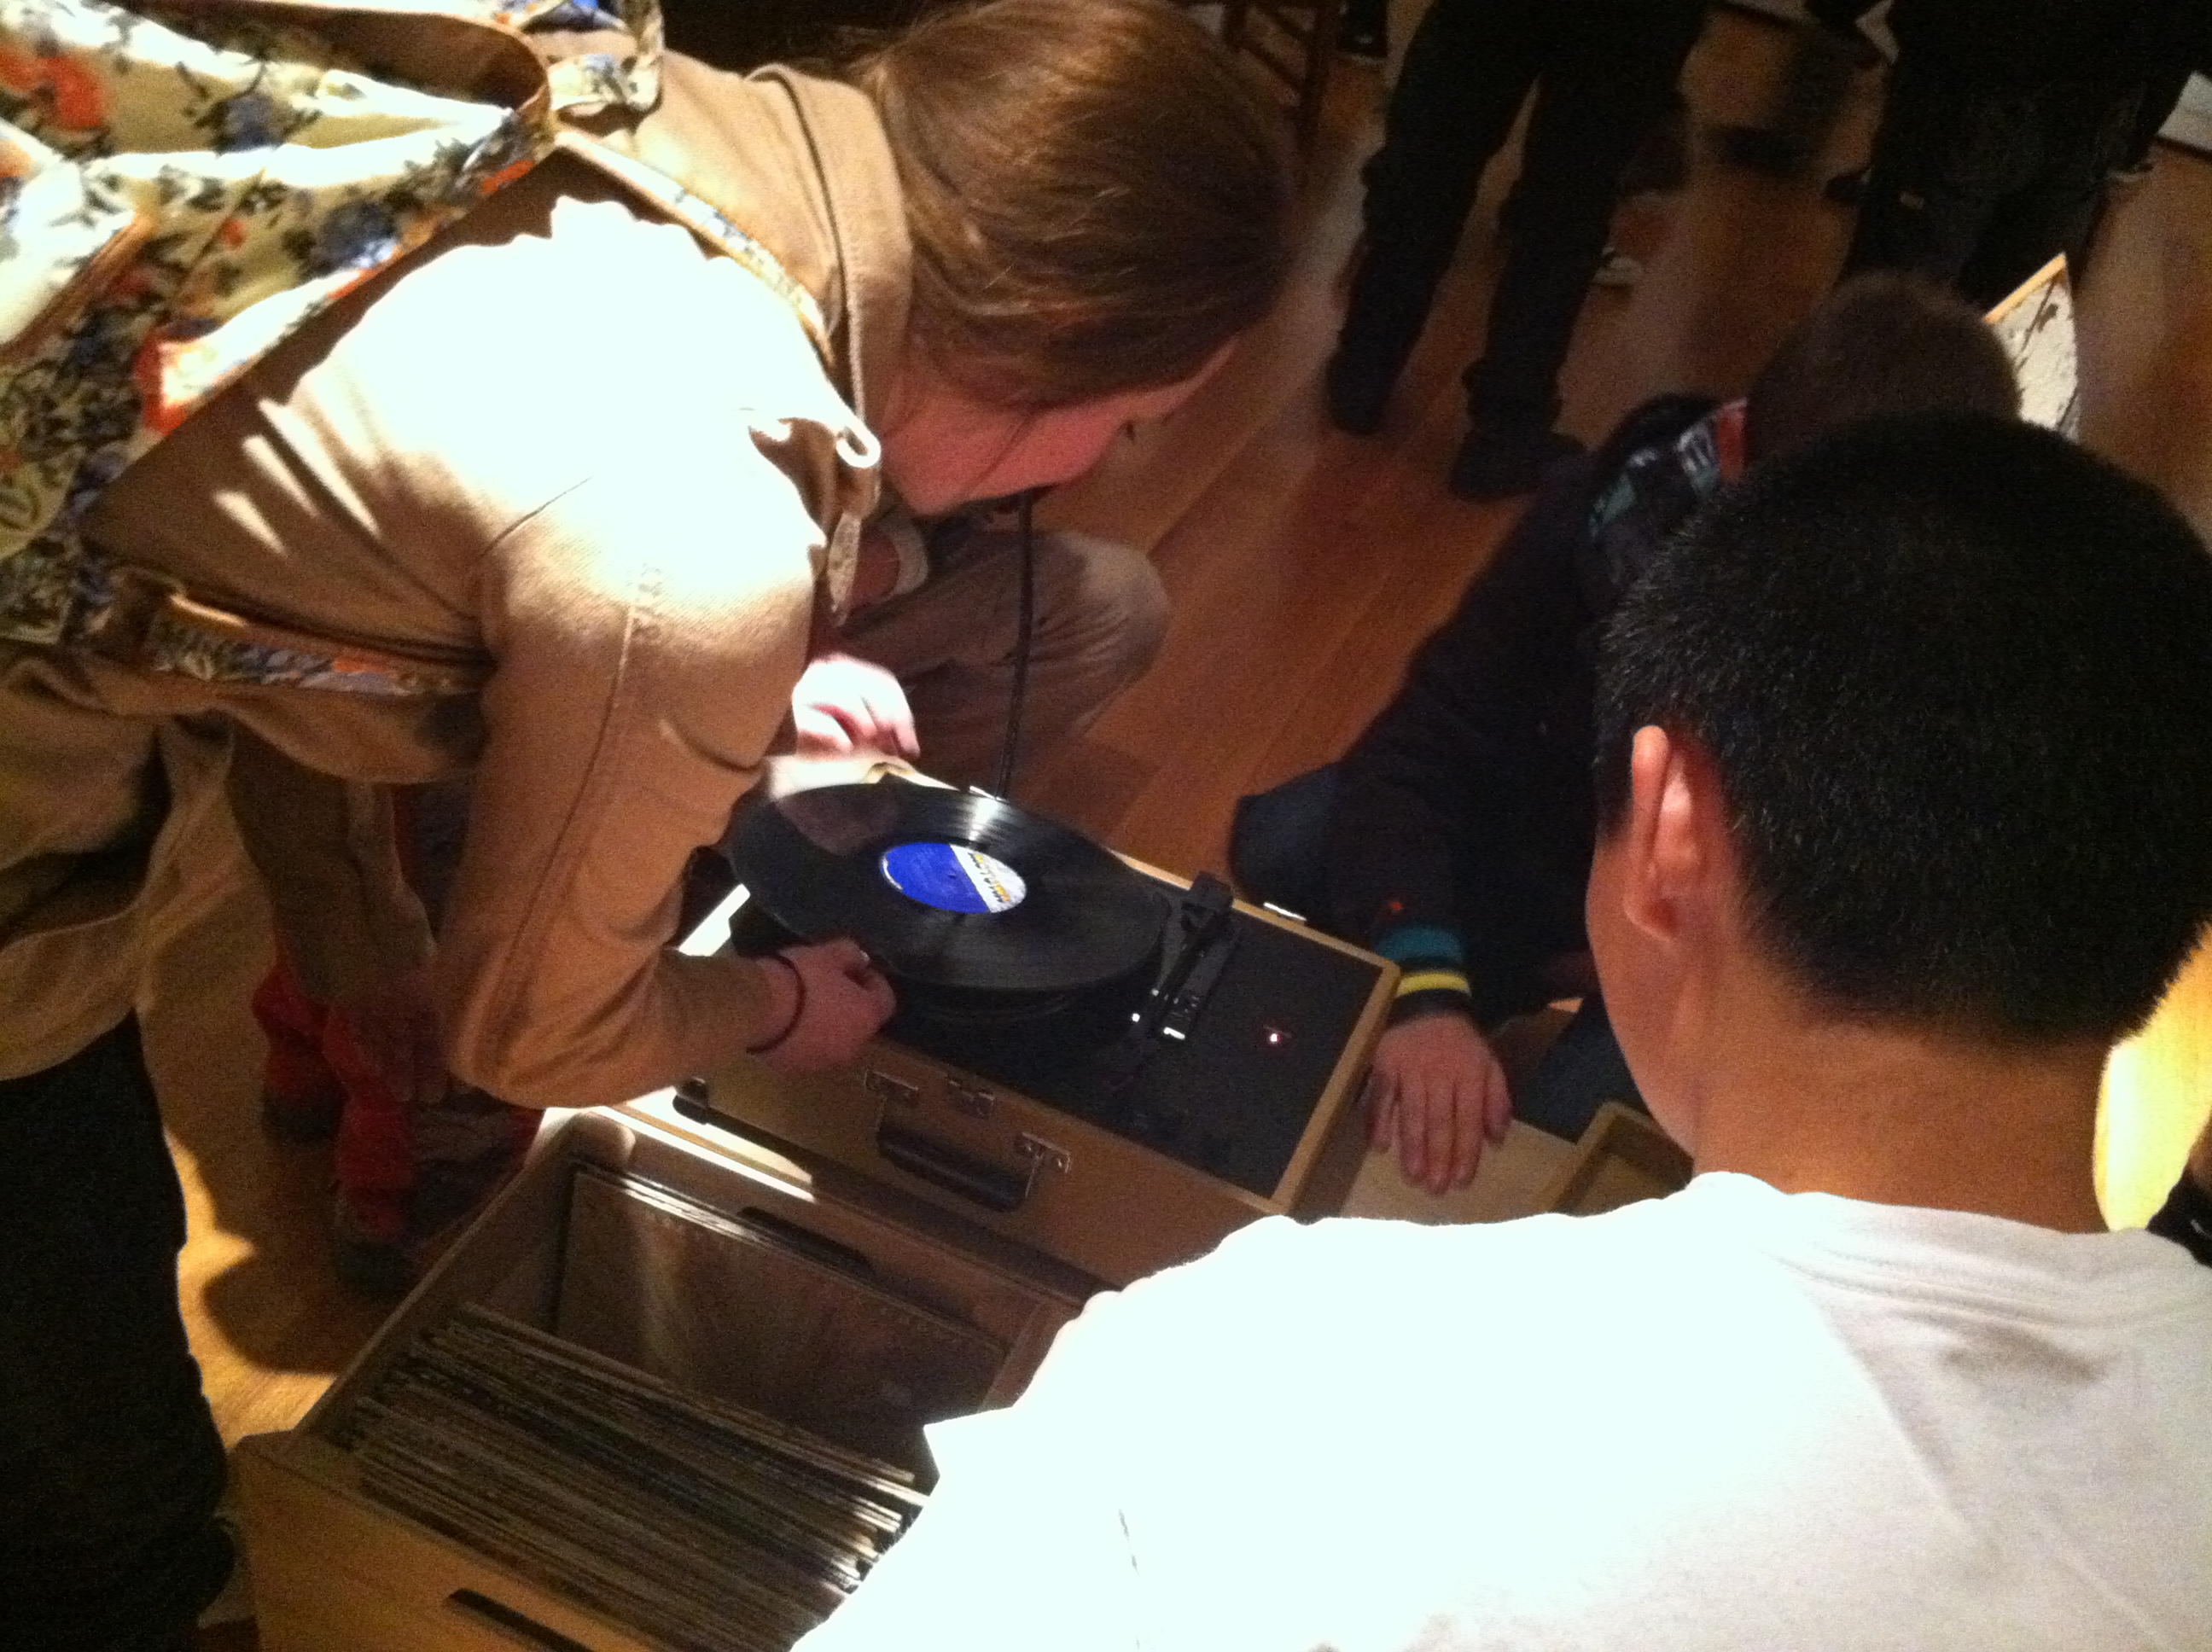 Teens exploring record players in Theaster Gates: The Listening Room at the Seattle Art Museum